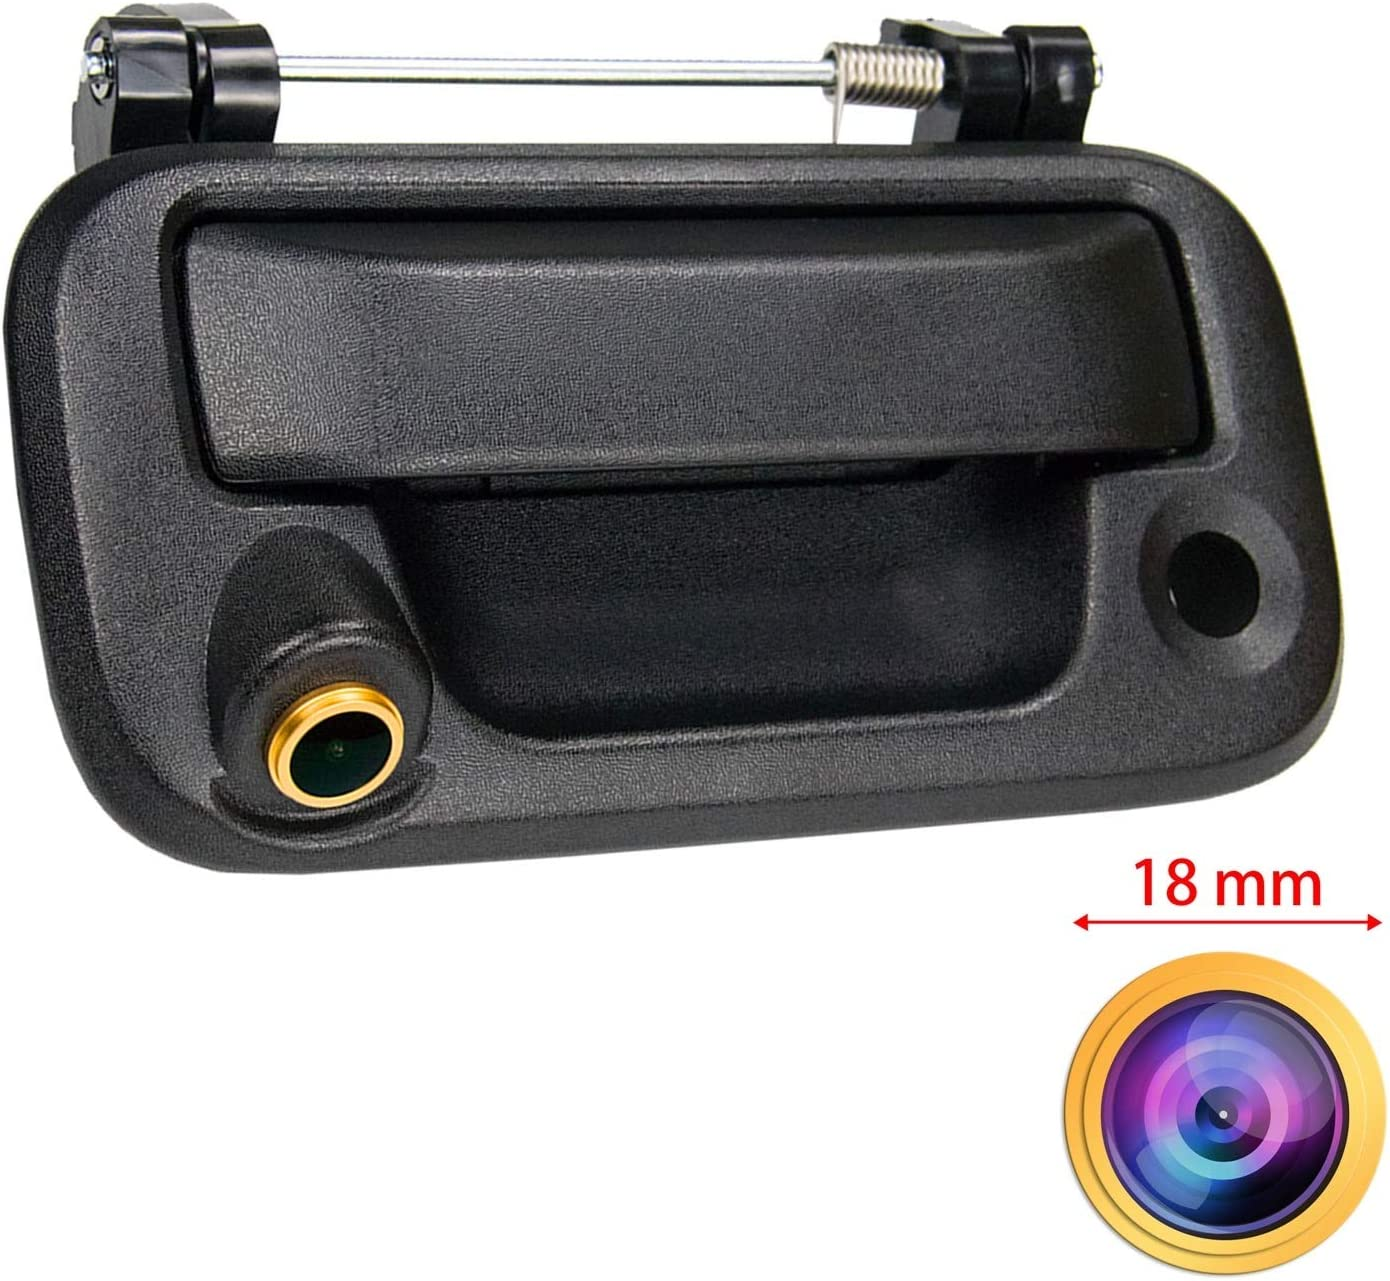 HD 1280x720p Golden Camera Reversing Camera Integrated in Trunk Handle Rear View Backup Parking Camera Replacement for Pick-up Ford F150 F250 F350 F450 F550 2005-2014